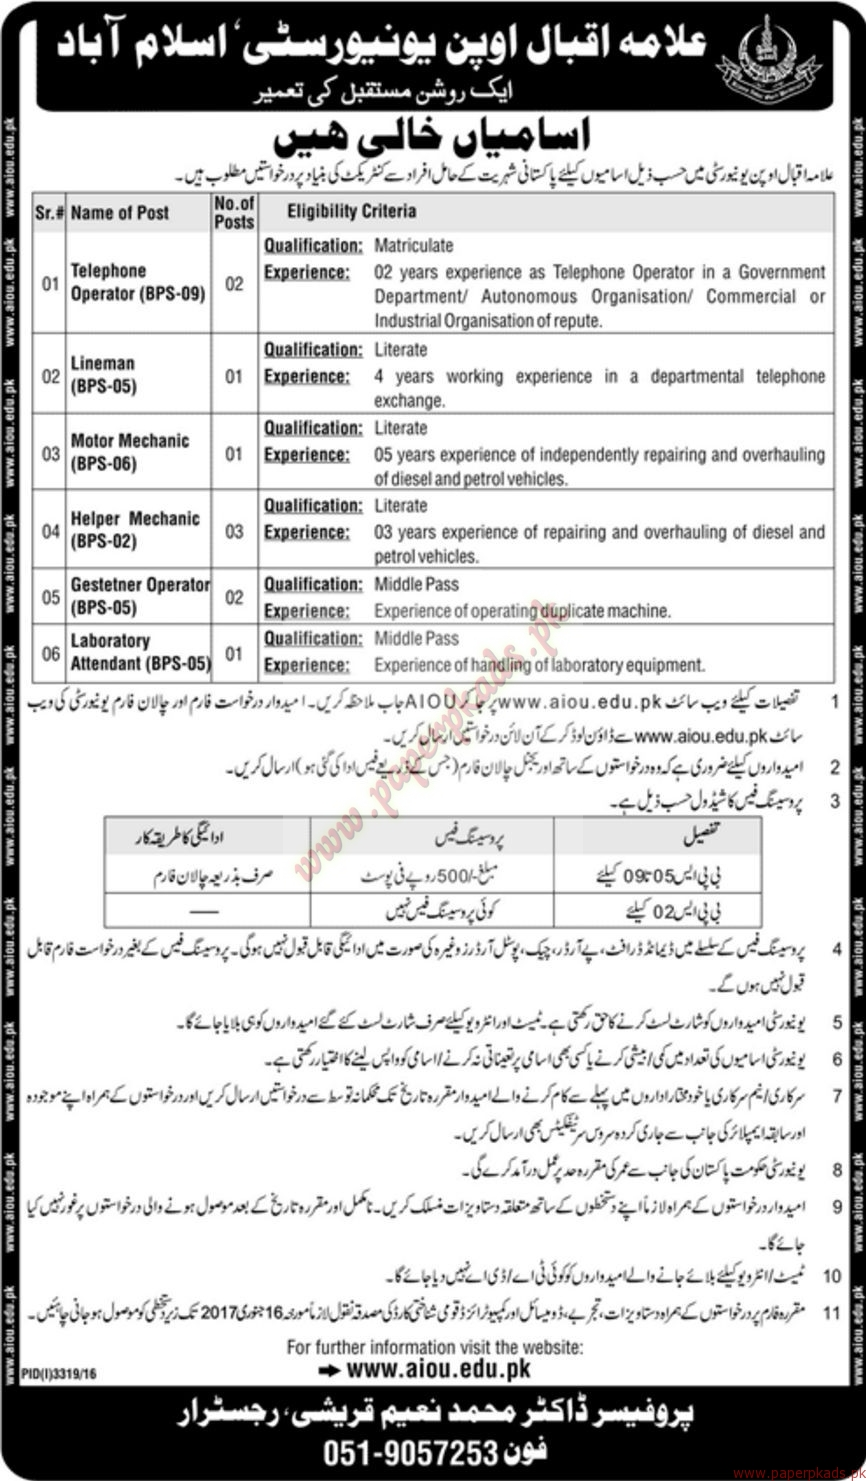 Allama Iqbal Open University Islamabad Jobs - Jang Jobs ads 01 January 2017